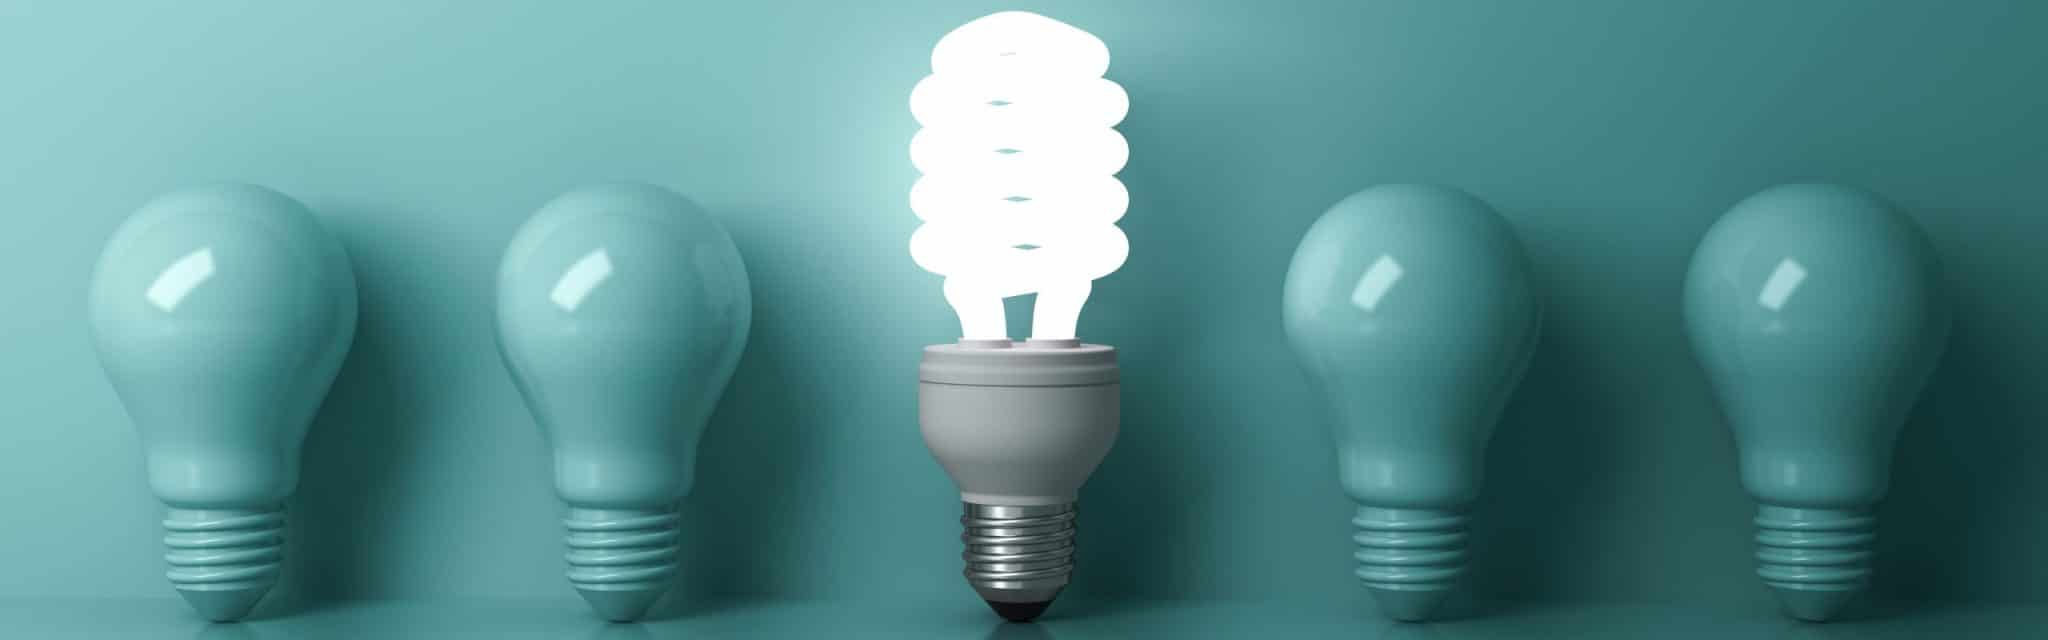 The lightbulb illustrates how HR chatbot consultants can bring bright ideas to your project